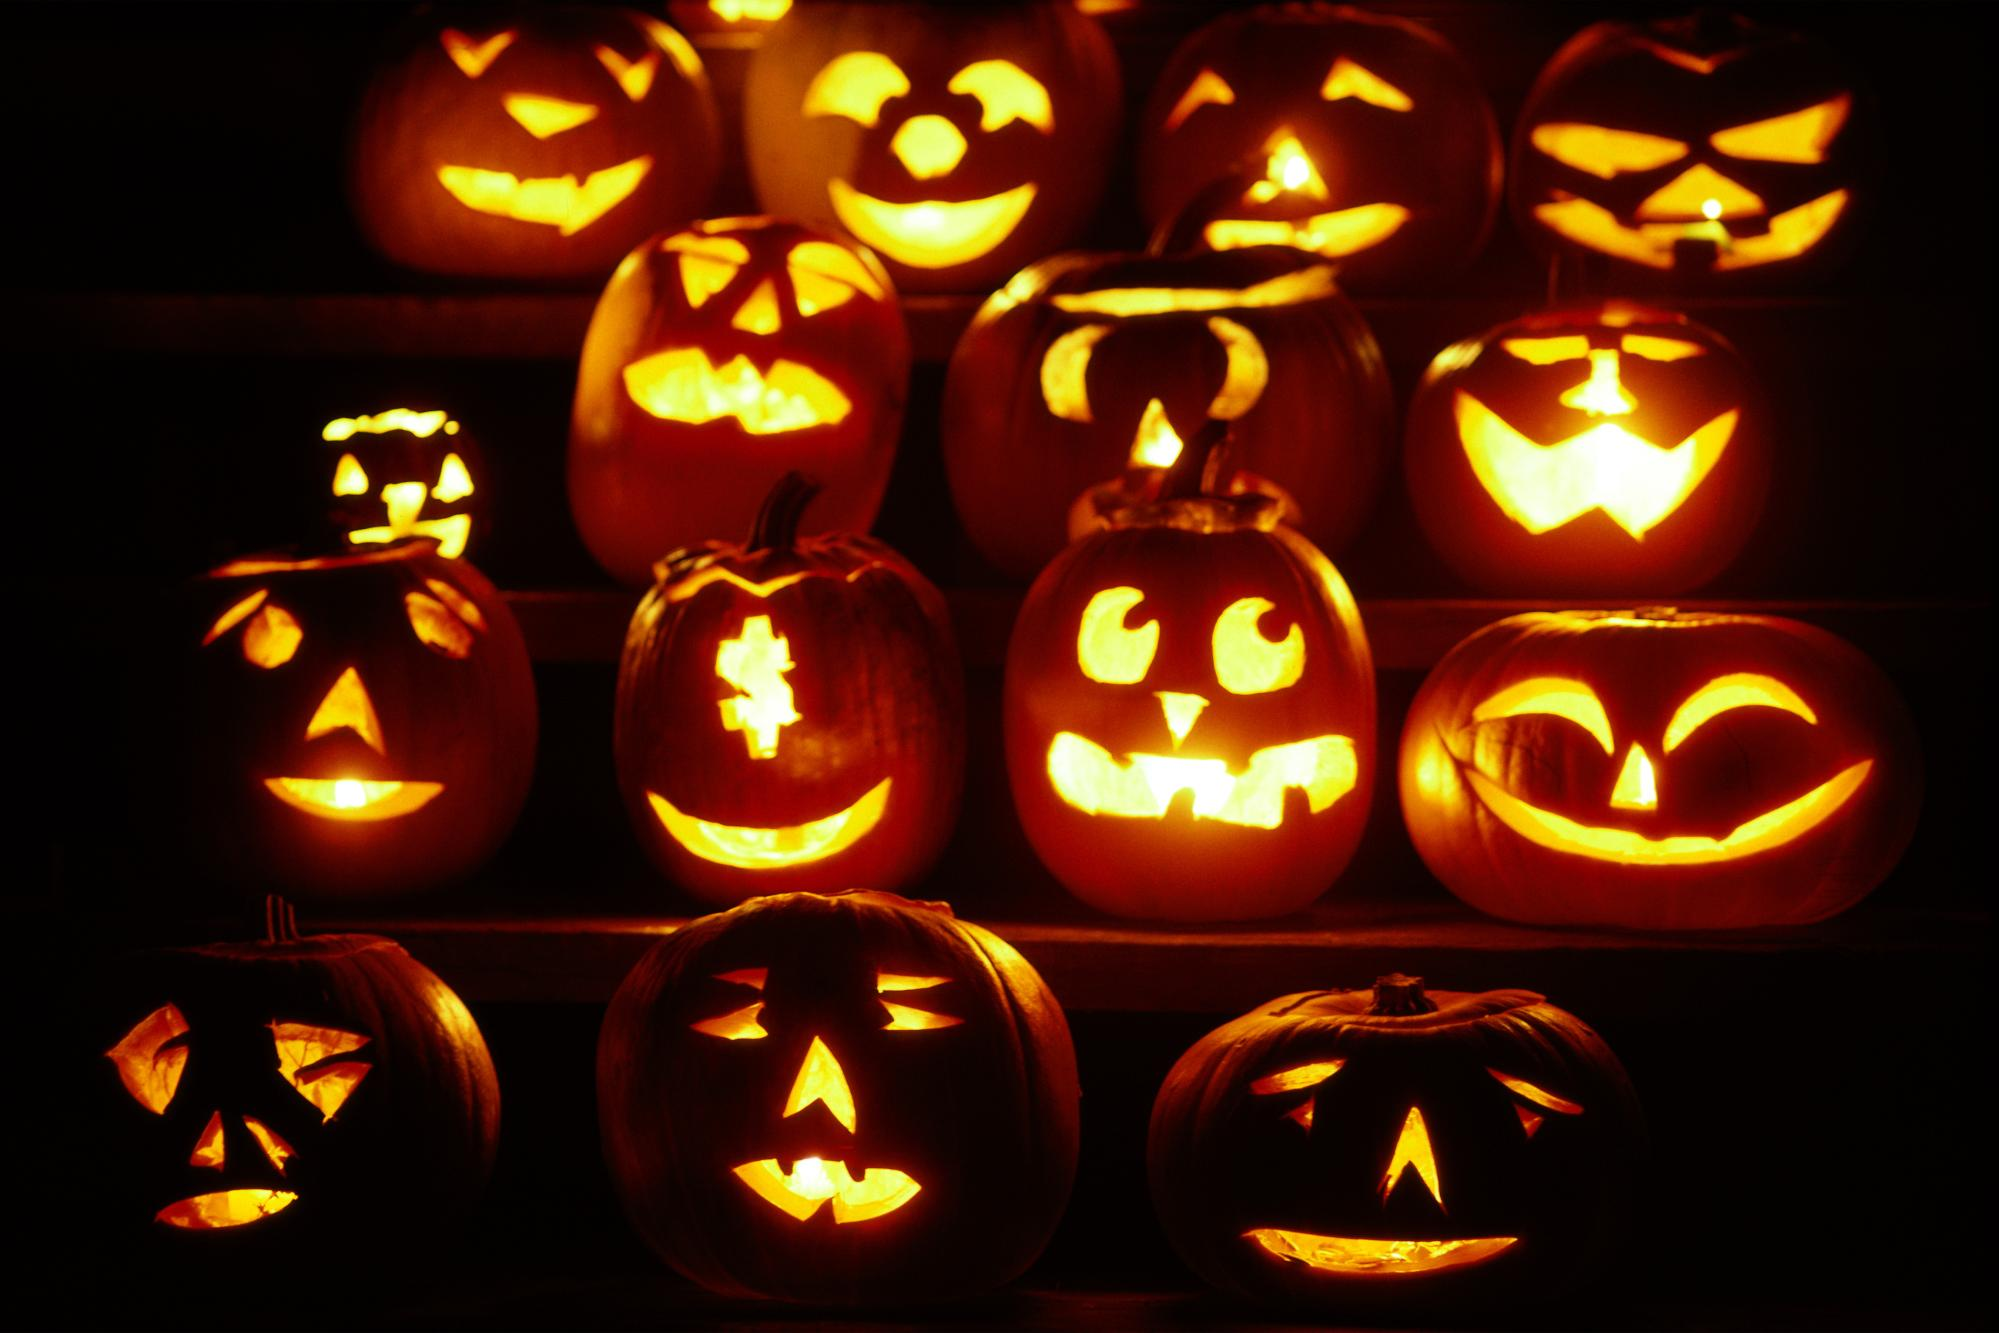 Pumpkins Desktop Wallpaper 61981 1999x1333px 1999x1333